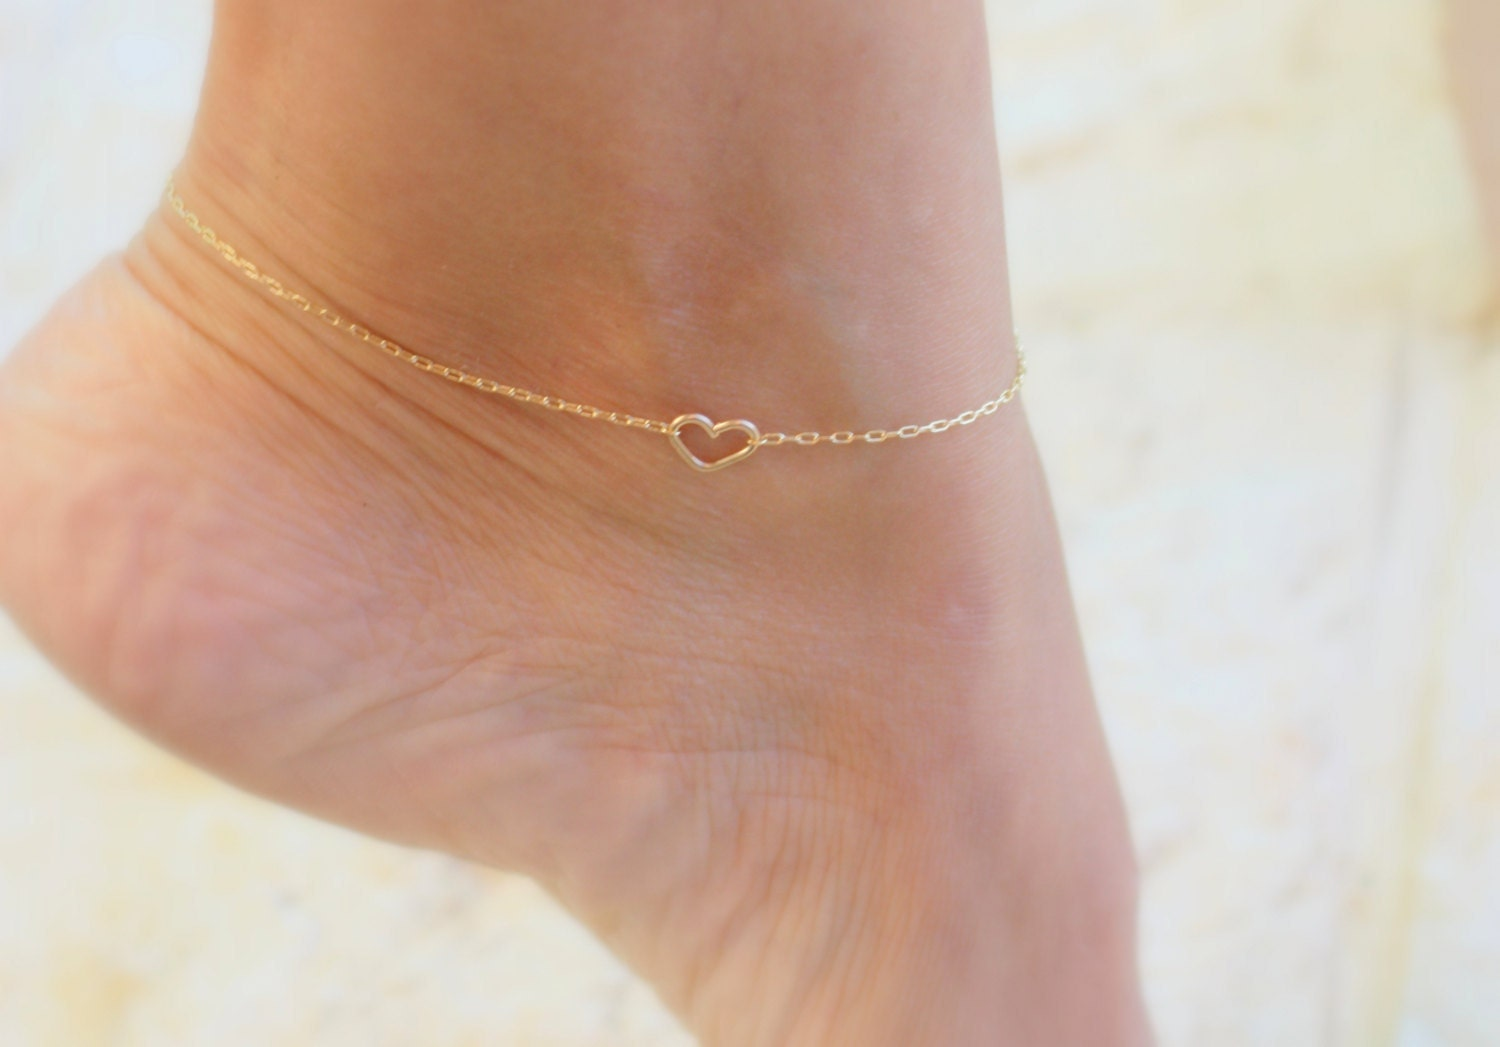 ankle anklet strap holjaz chic block high products product sandals gold boutique image